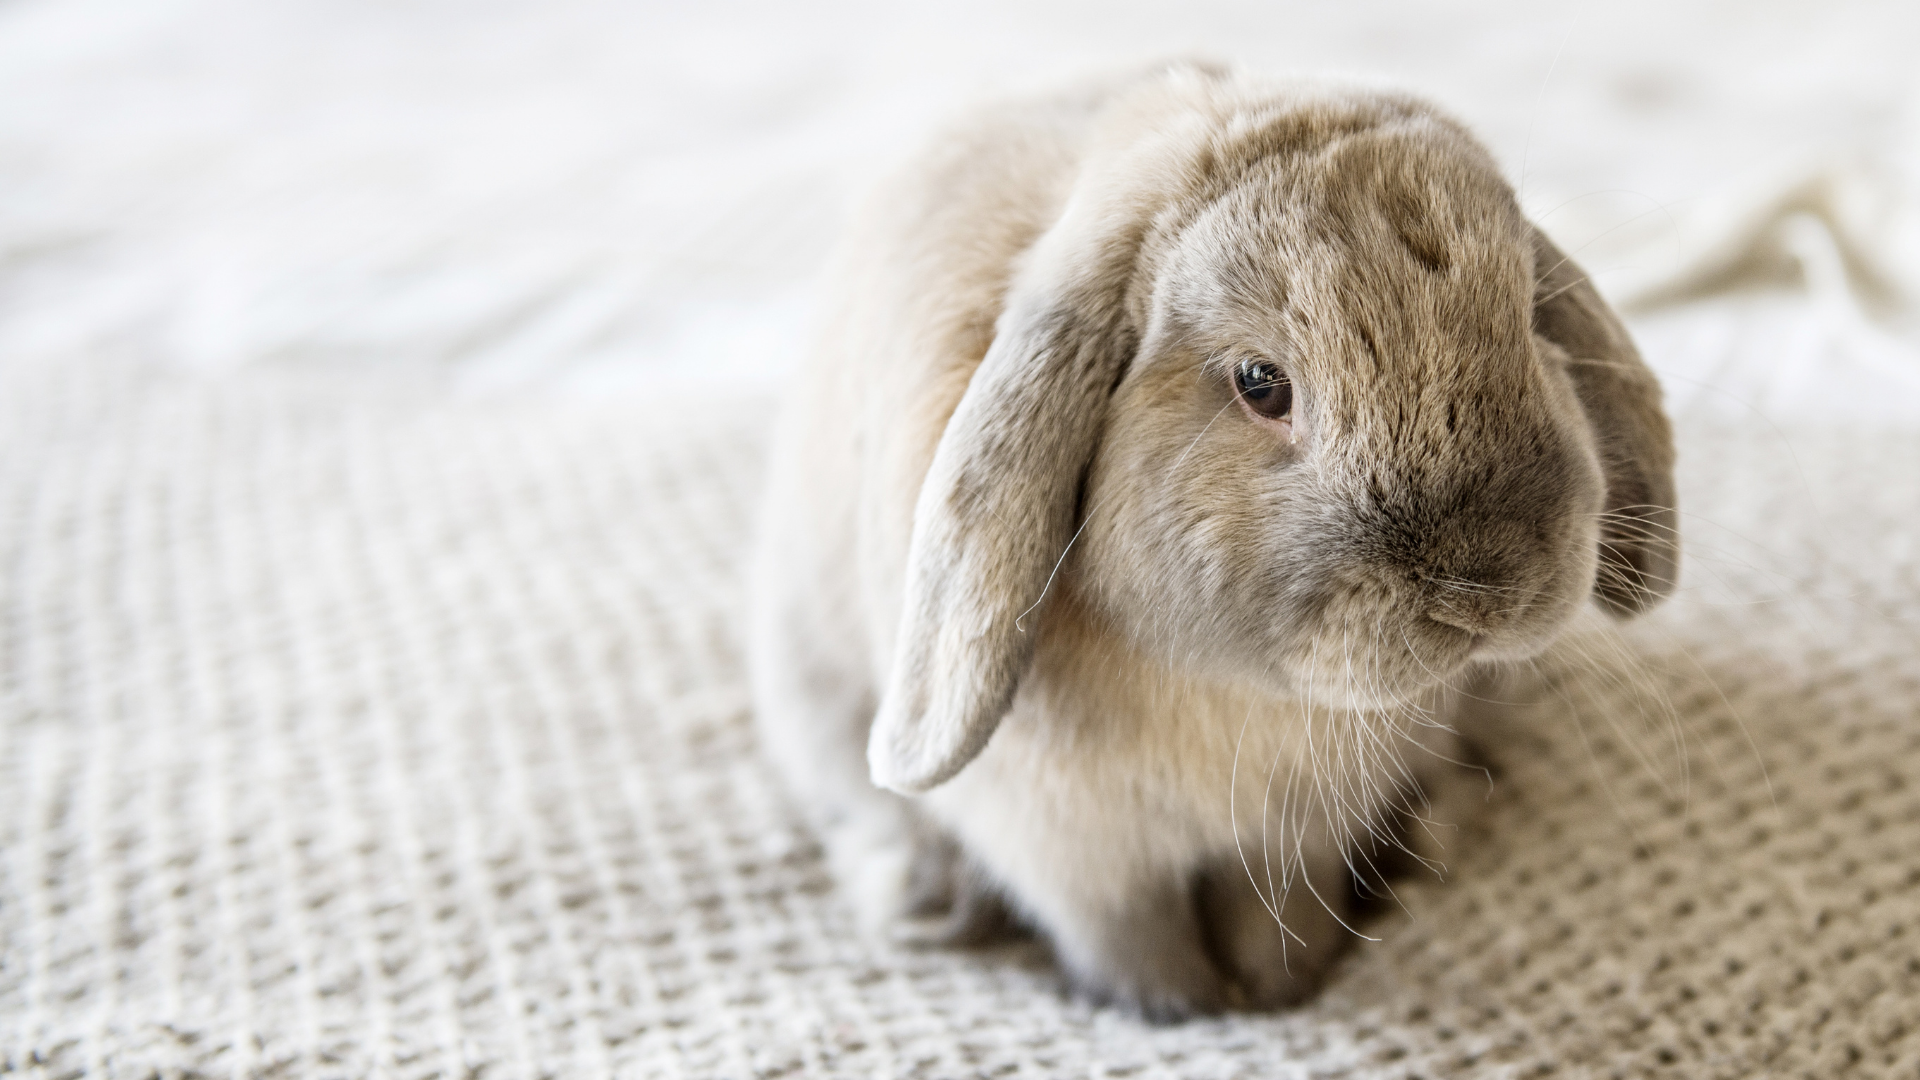 The Ultimate Bunny Guide